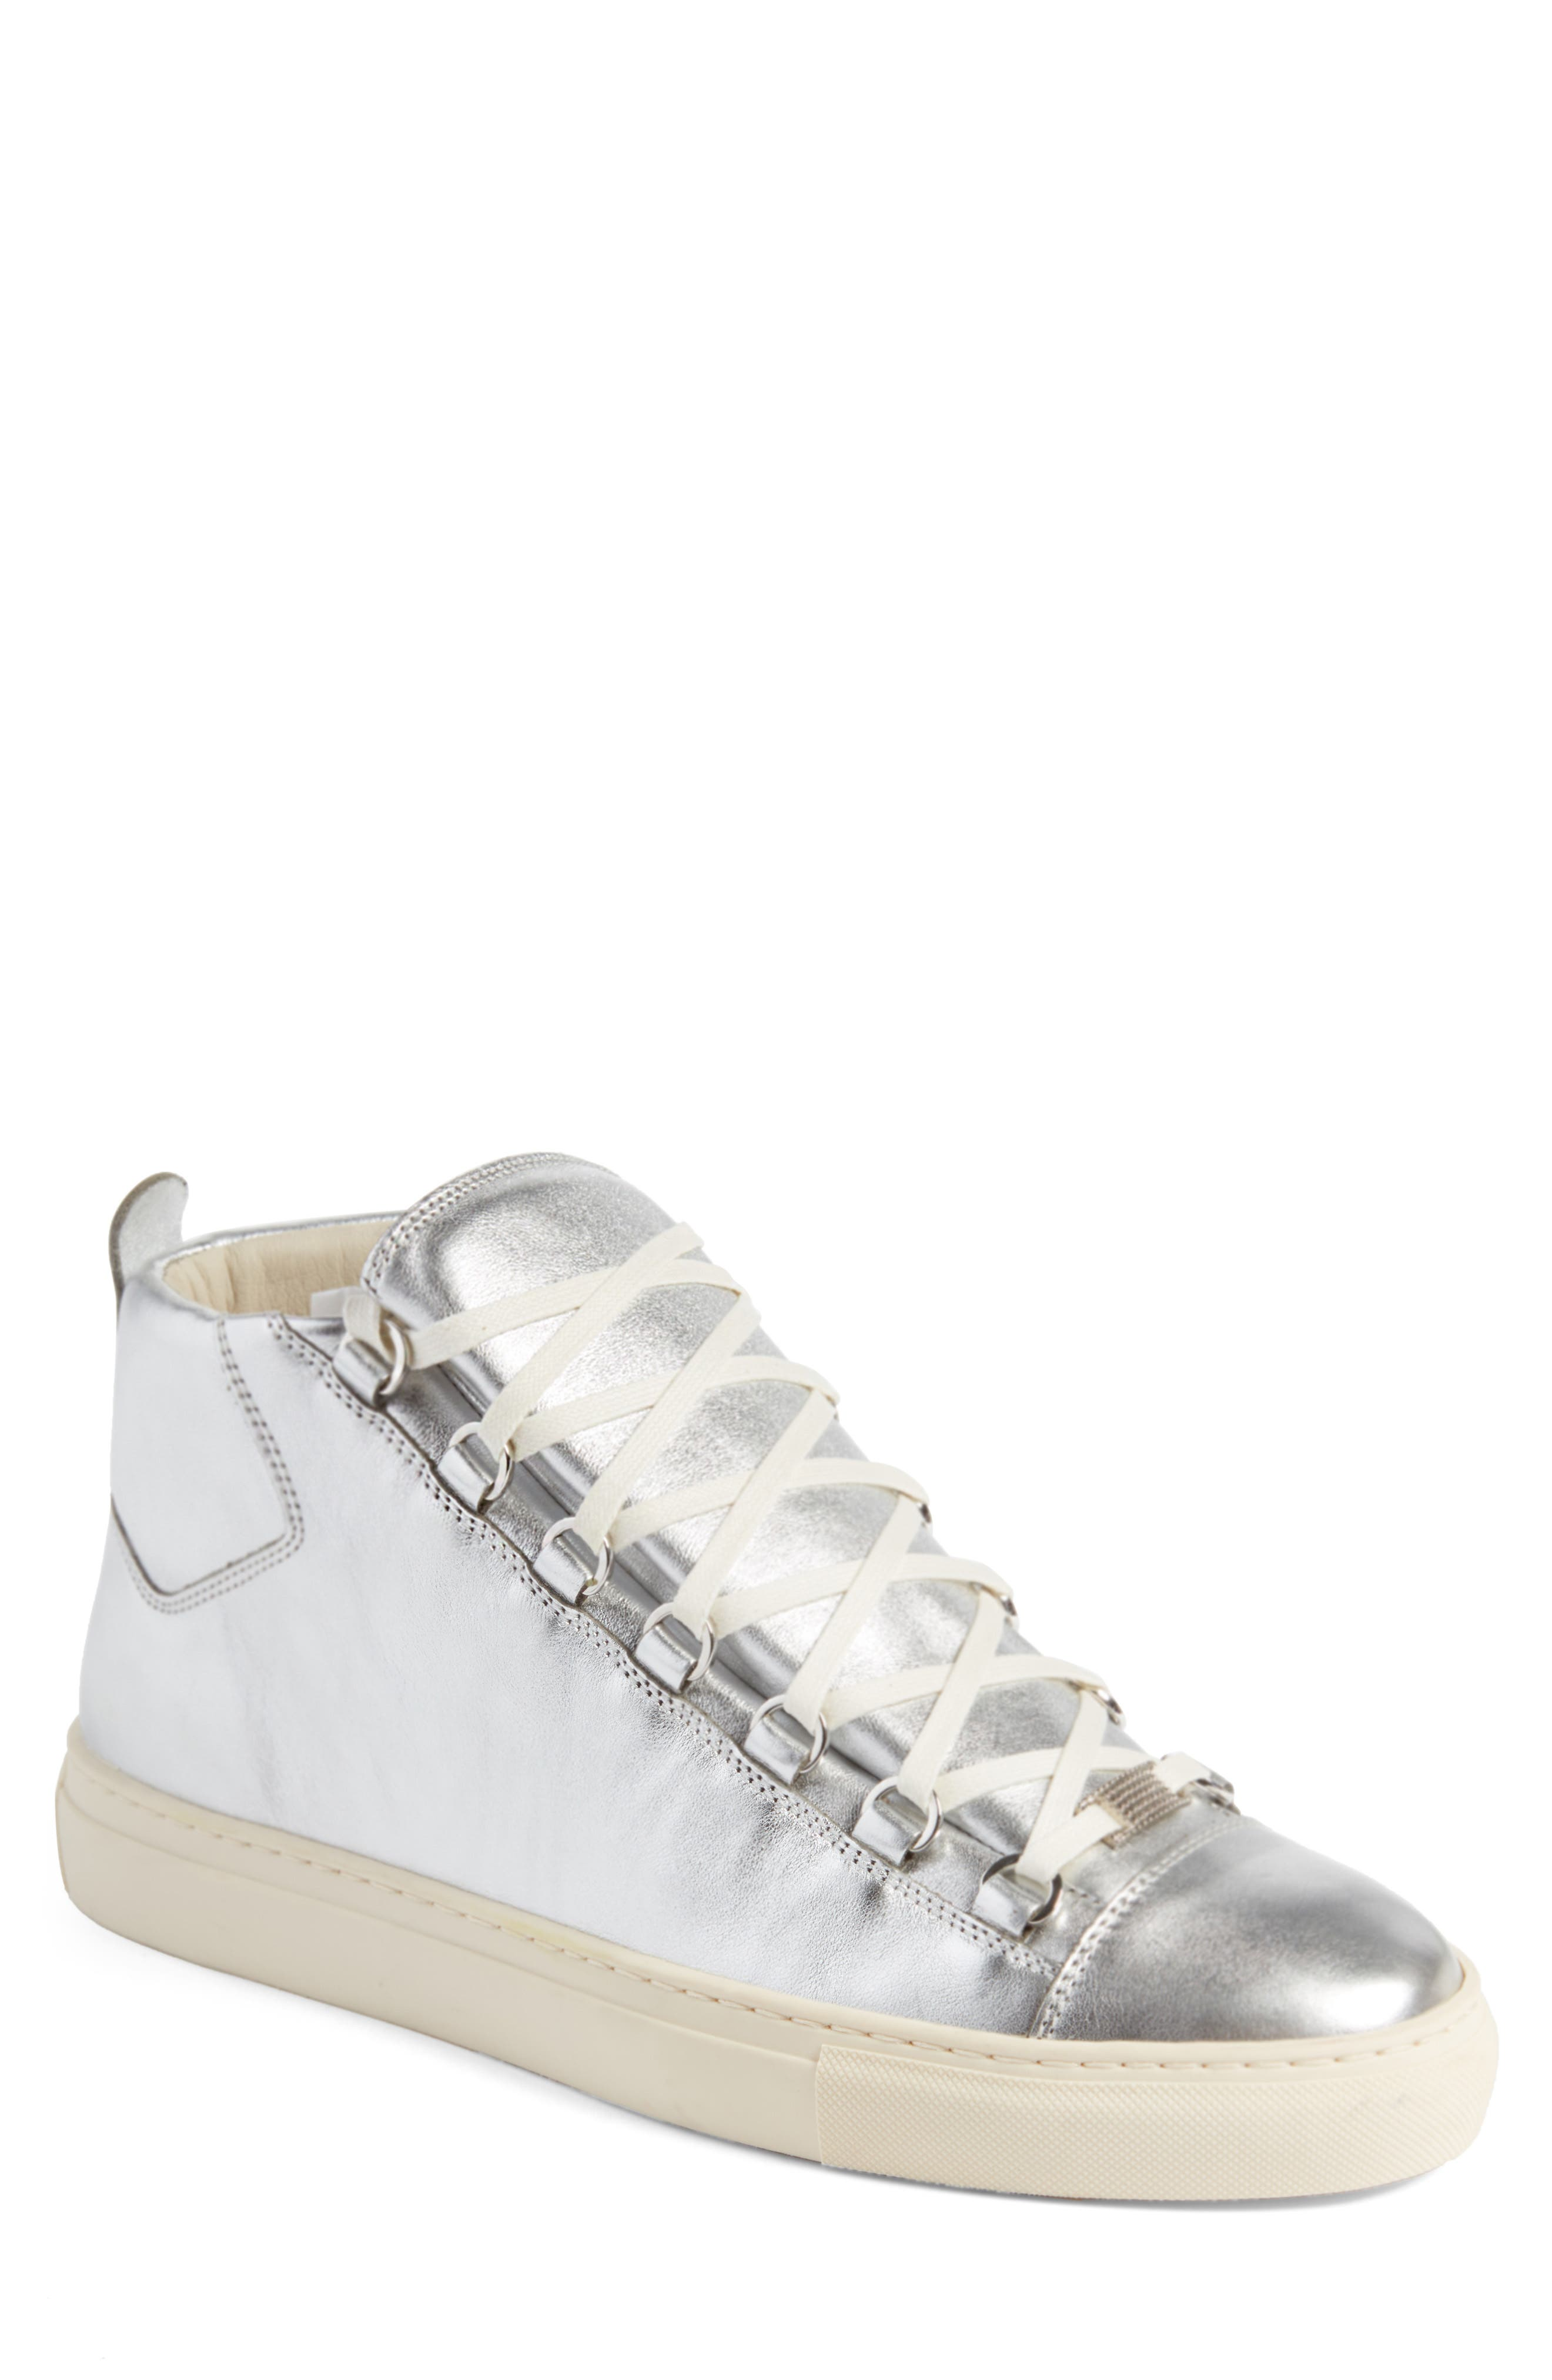 Balenciaga High Top Sneaker (Men)